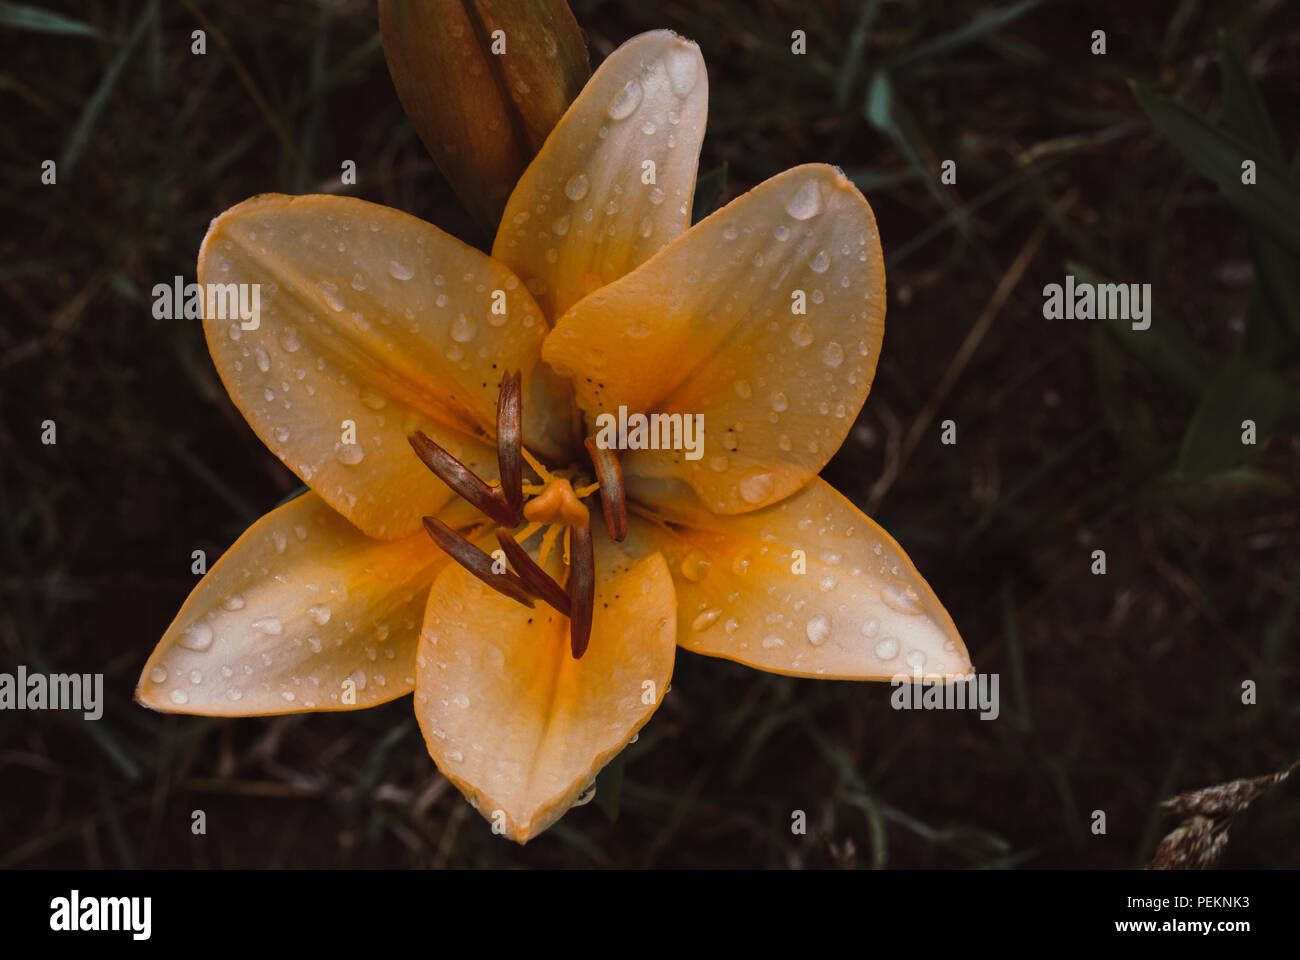 Macro shot of subtropical colorful bright orange and yellow lily flower with Drops of dew, blurry green background, summer lilie garden. Stock Photo